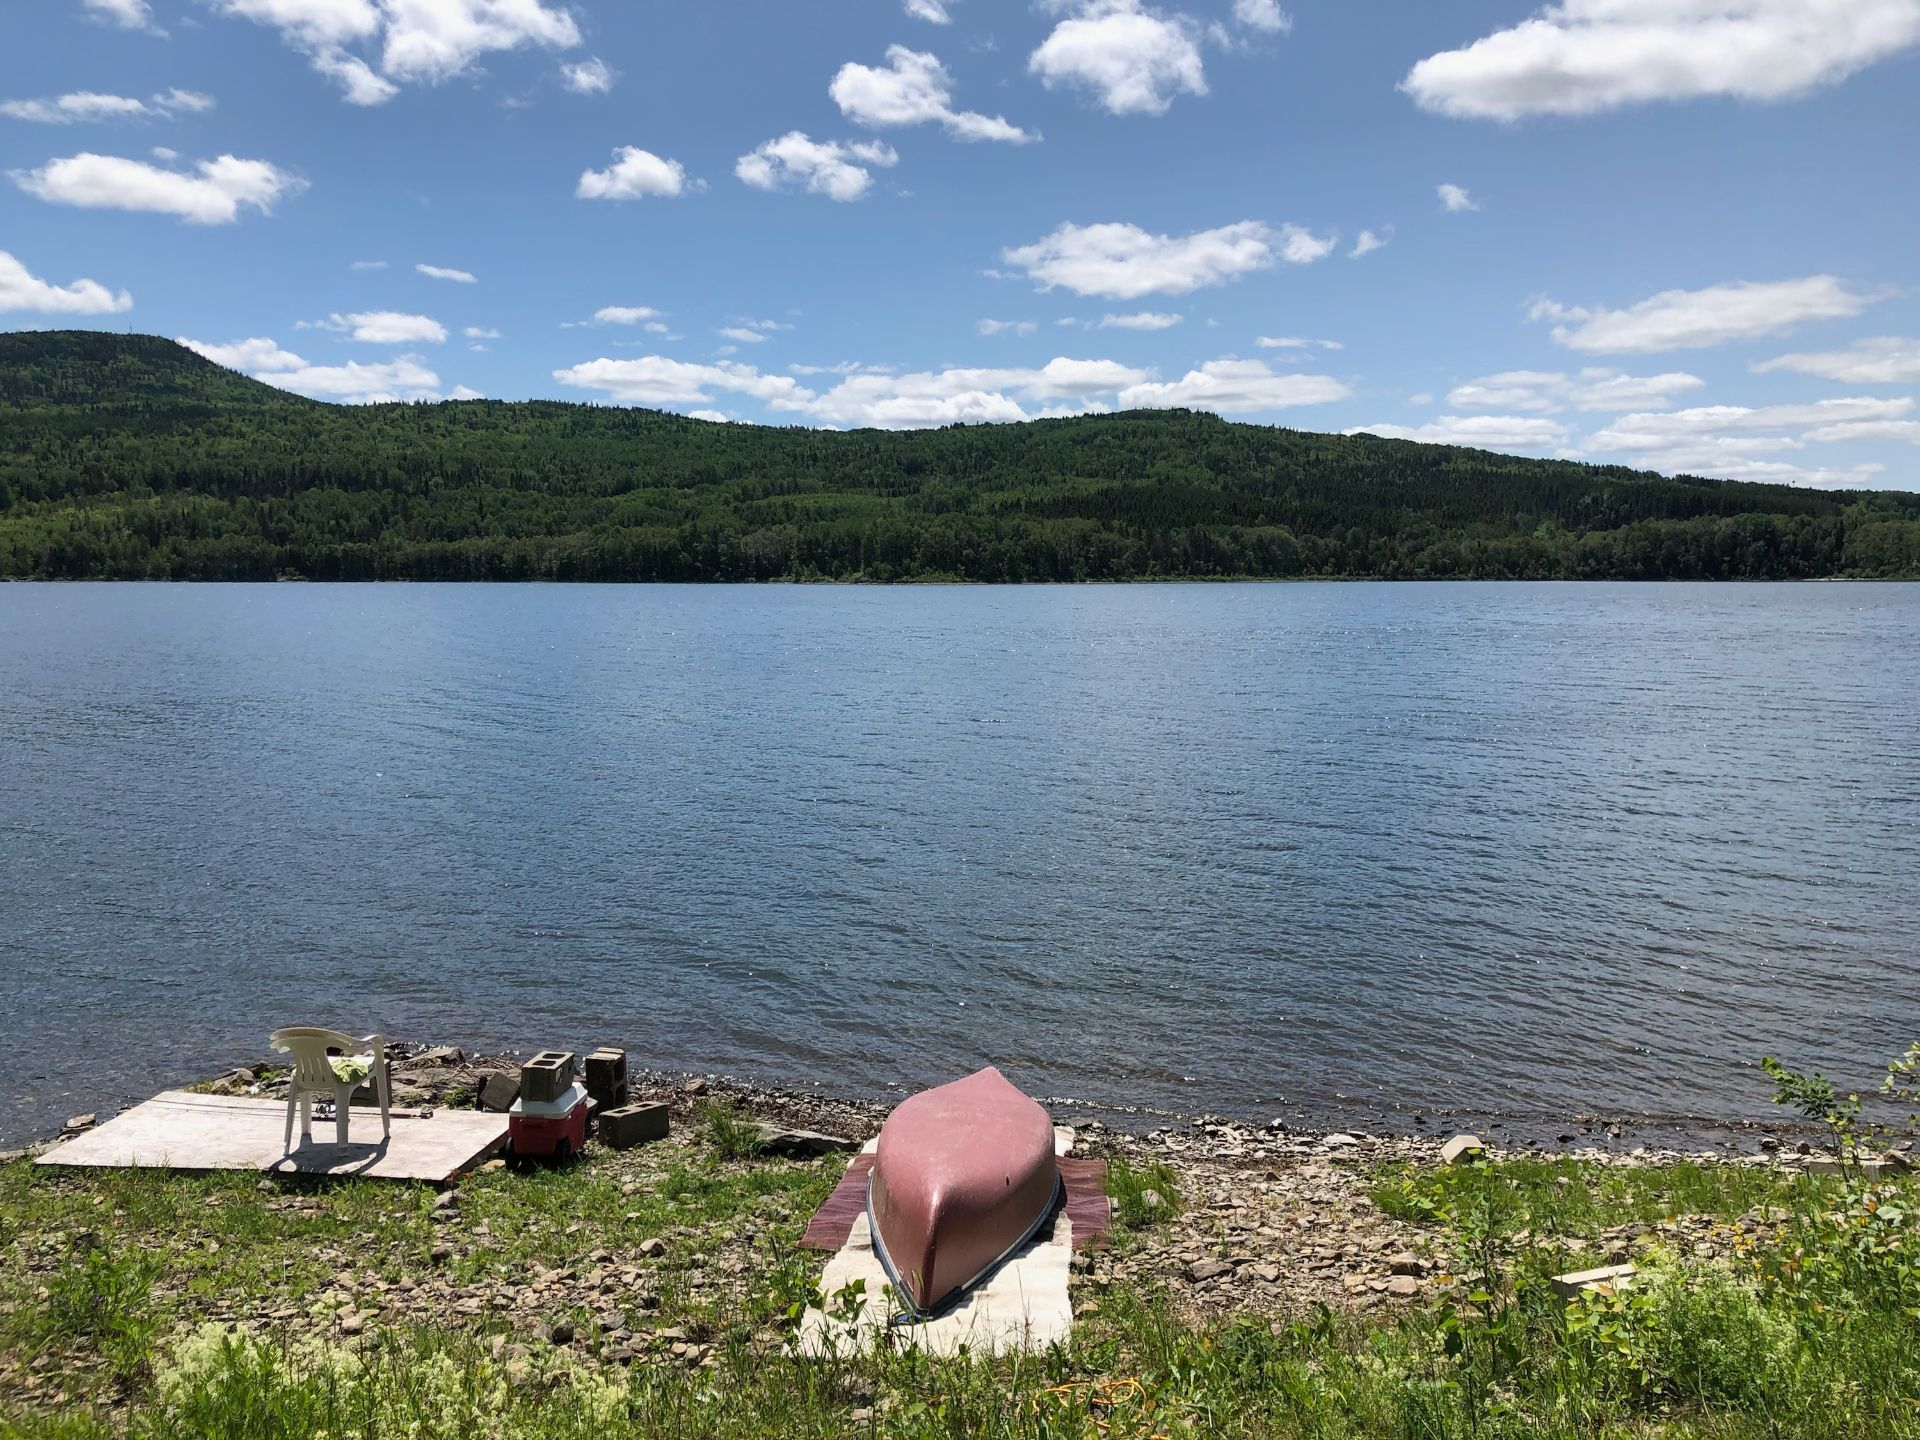 Photo of Listing #12789645